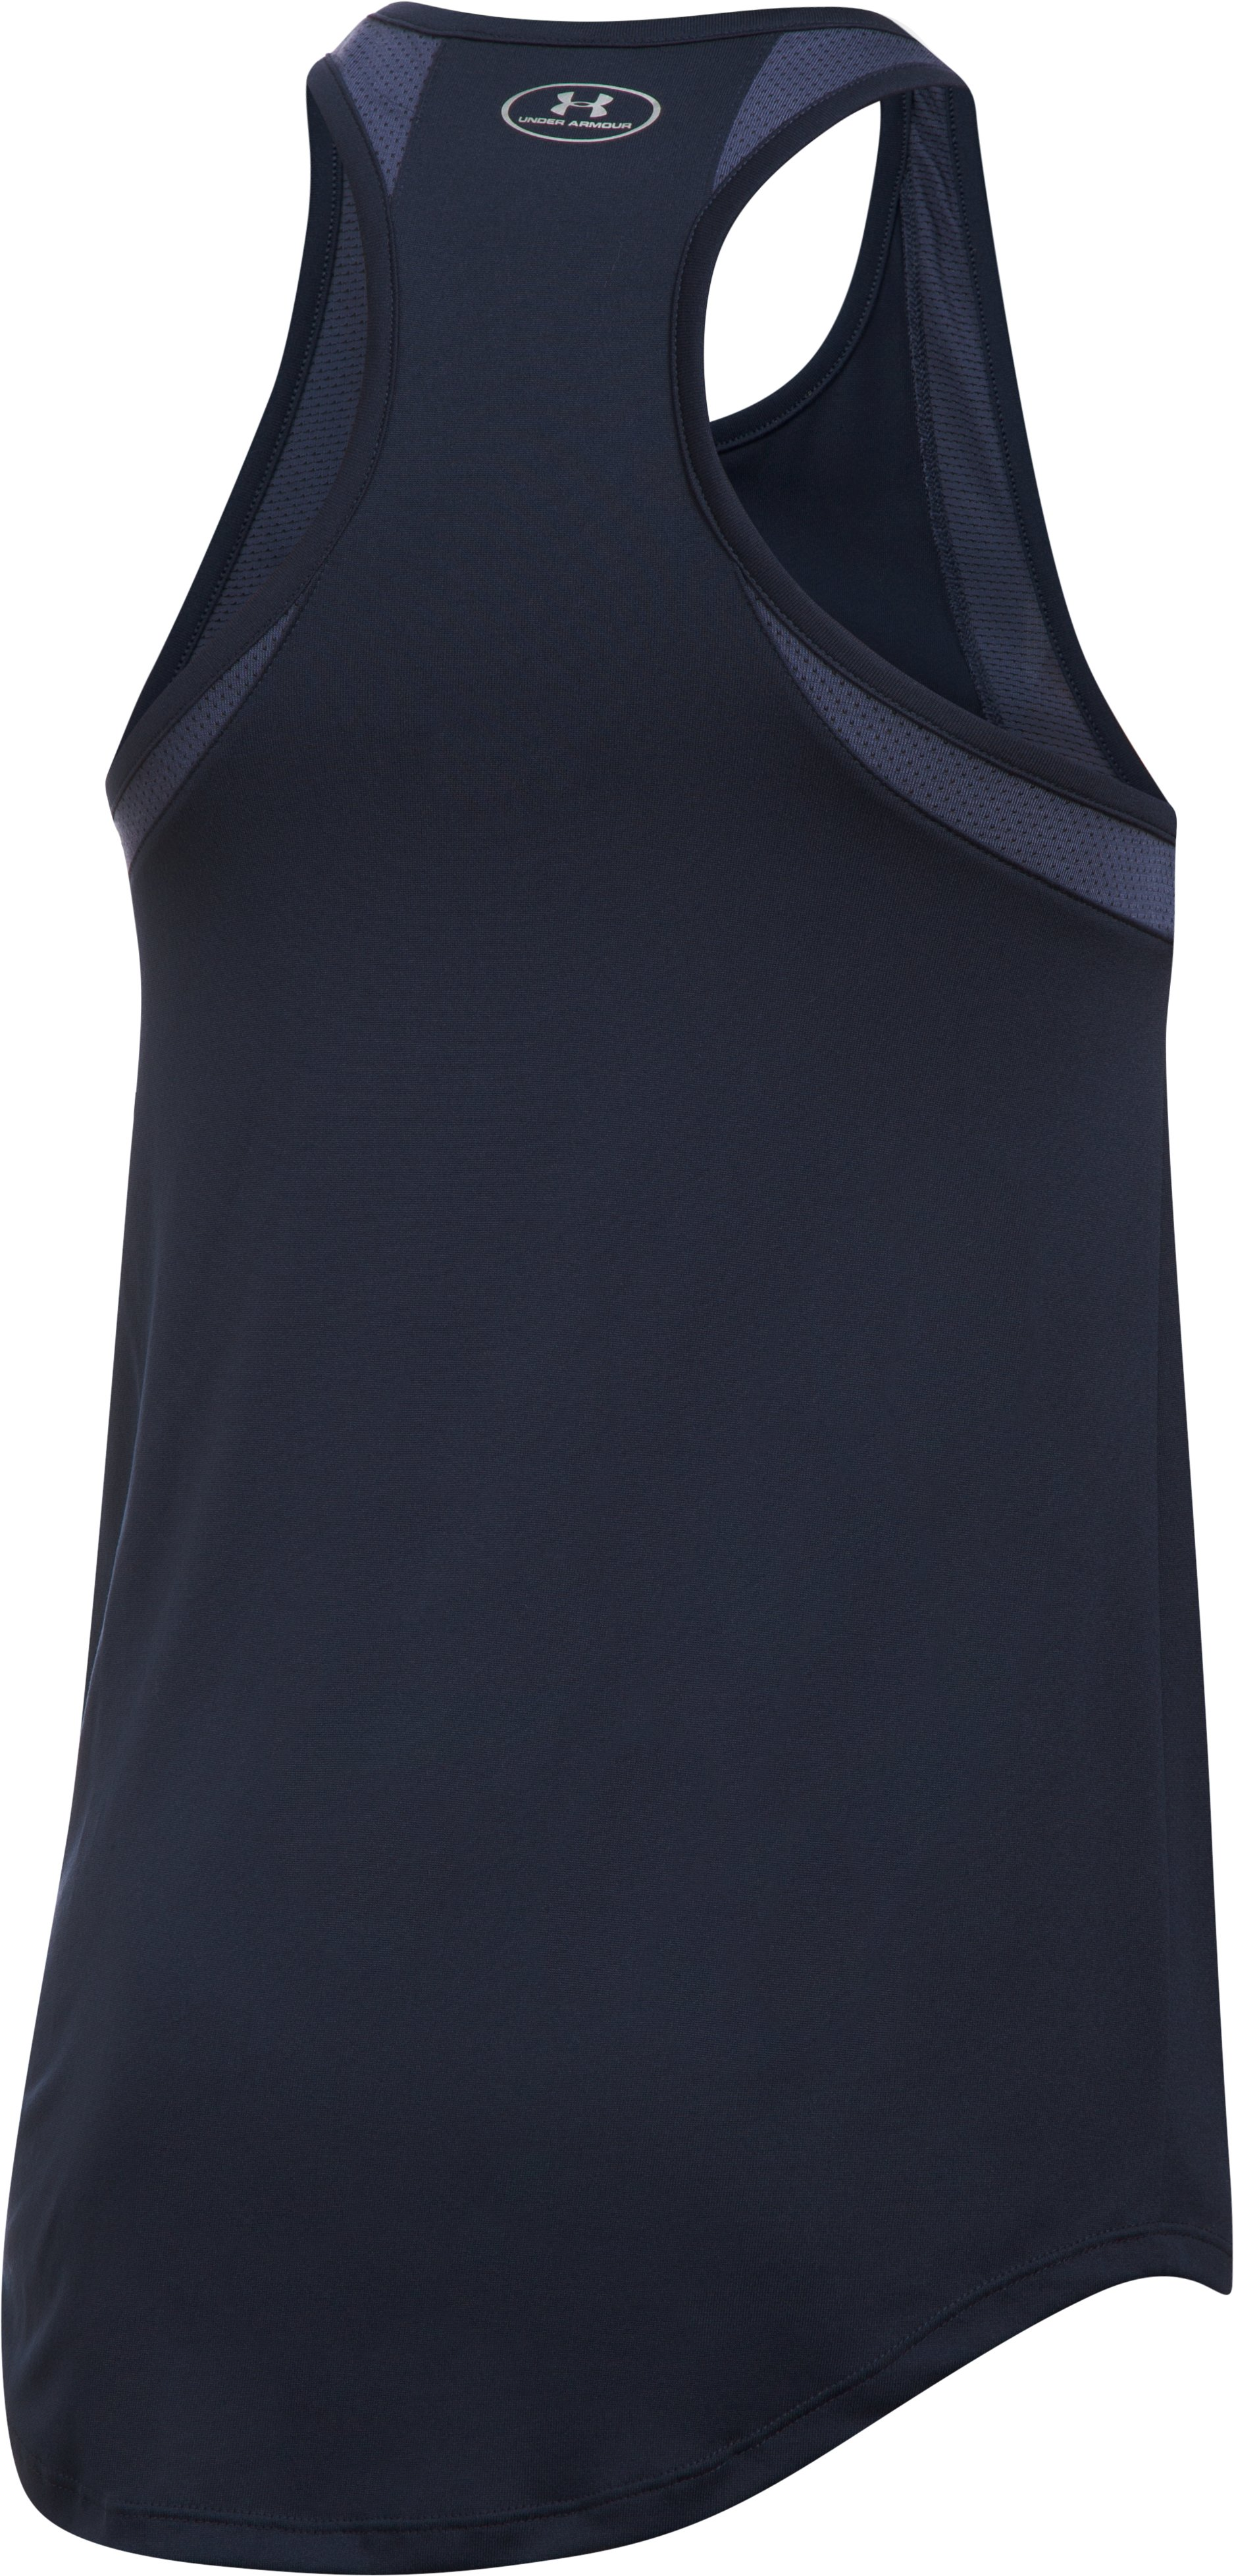 Women's Atlanta Braves UA Tech™ Mesh Tank, Midnight Navy